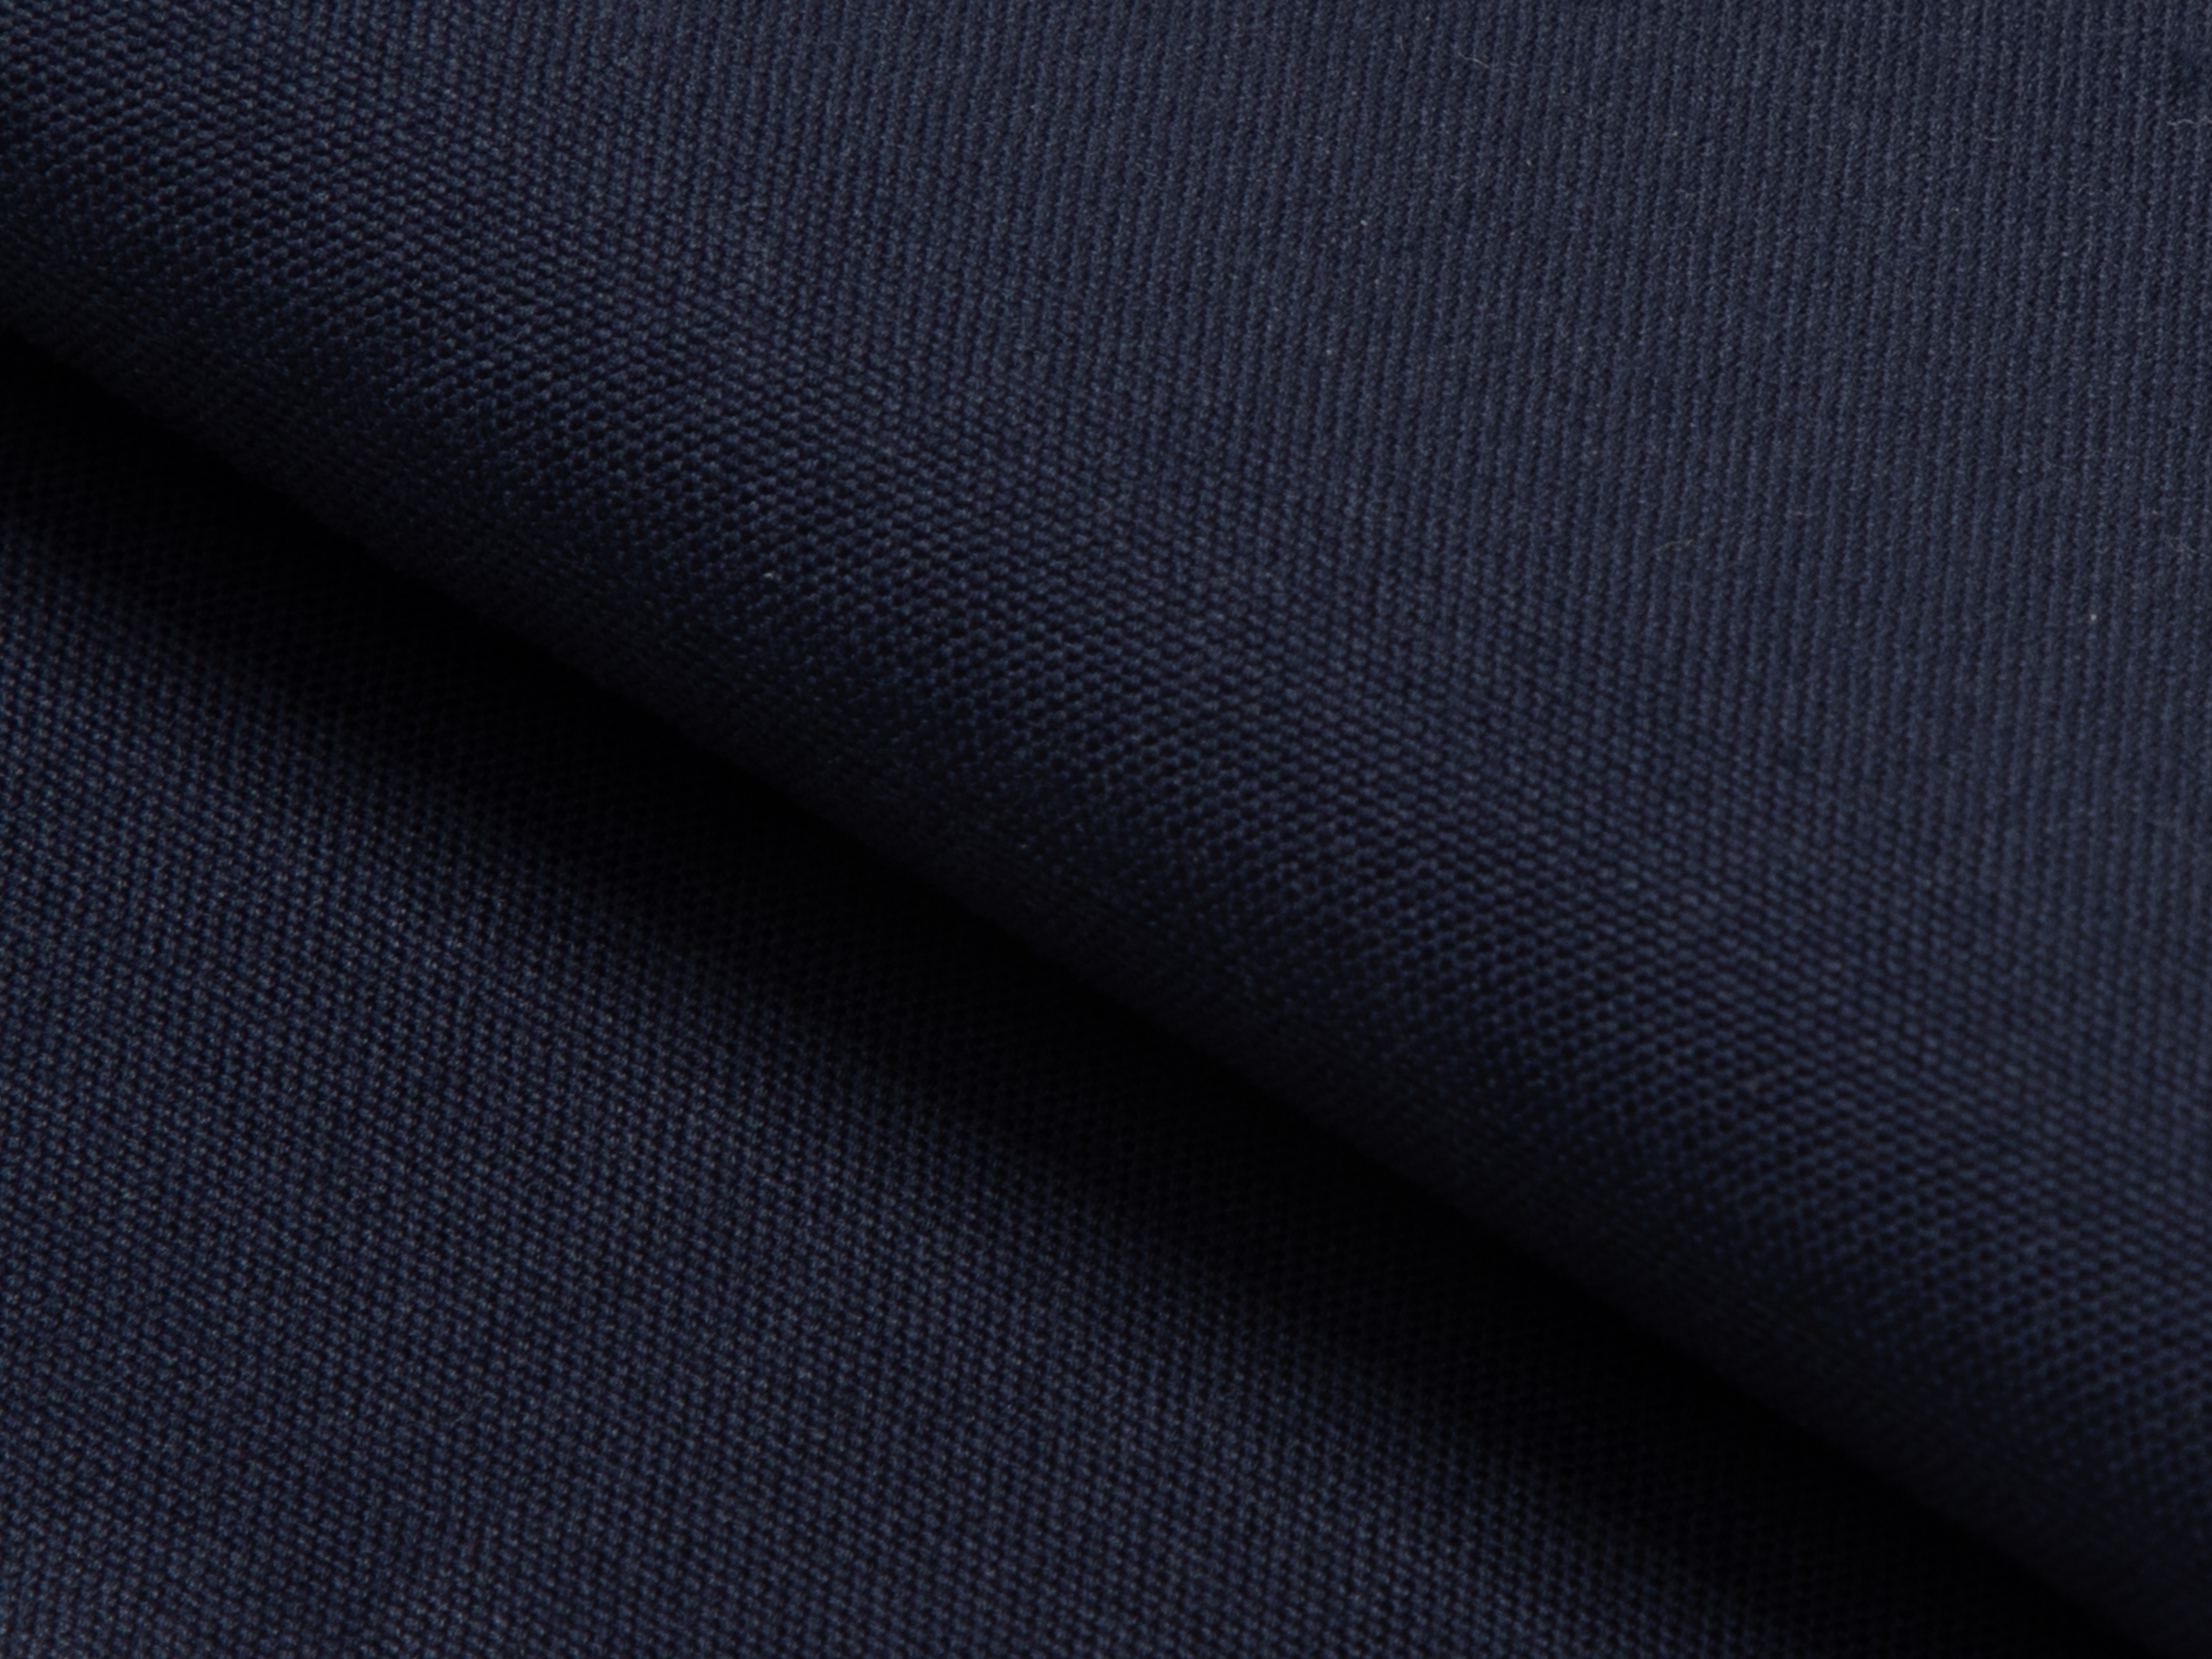 Buy tailor made shirts online - PINPOINT LUXURY - Pinpoint Navy